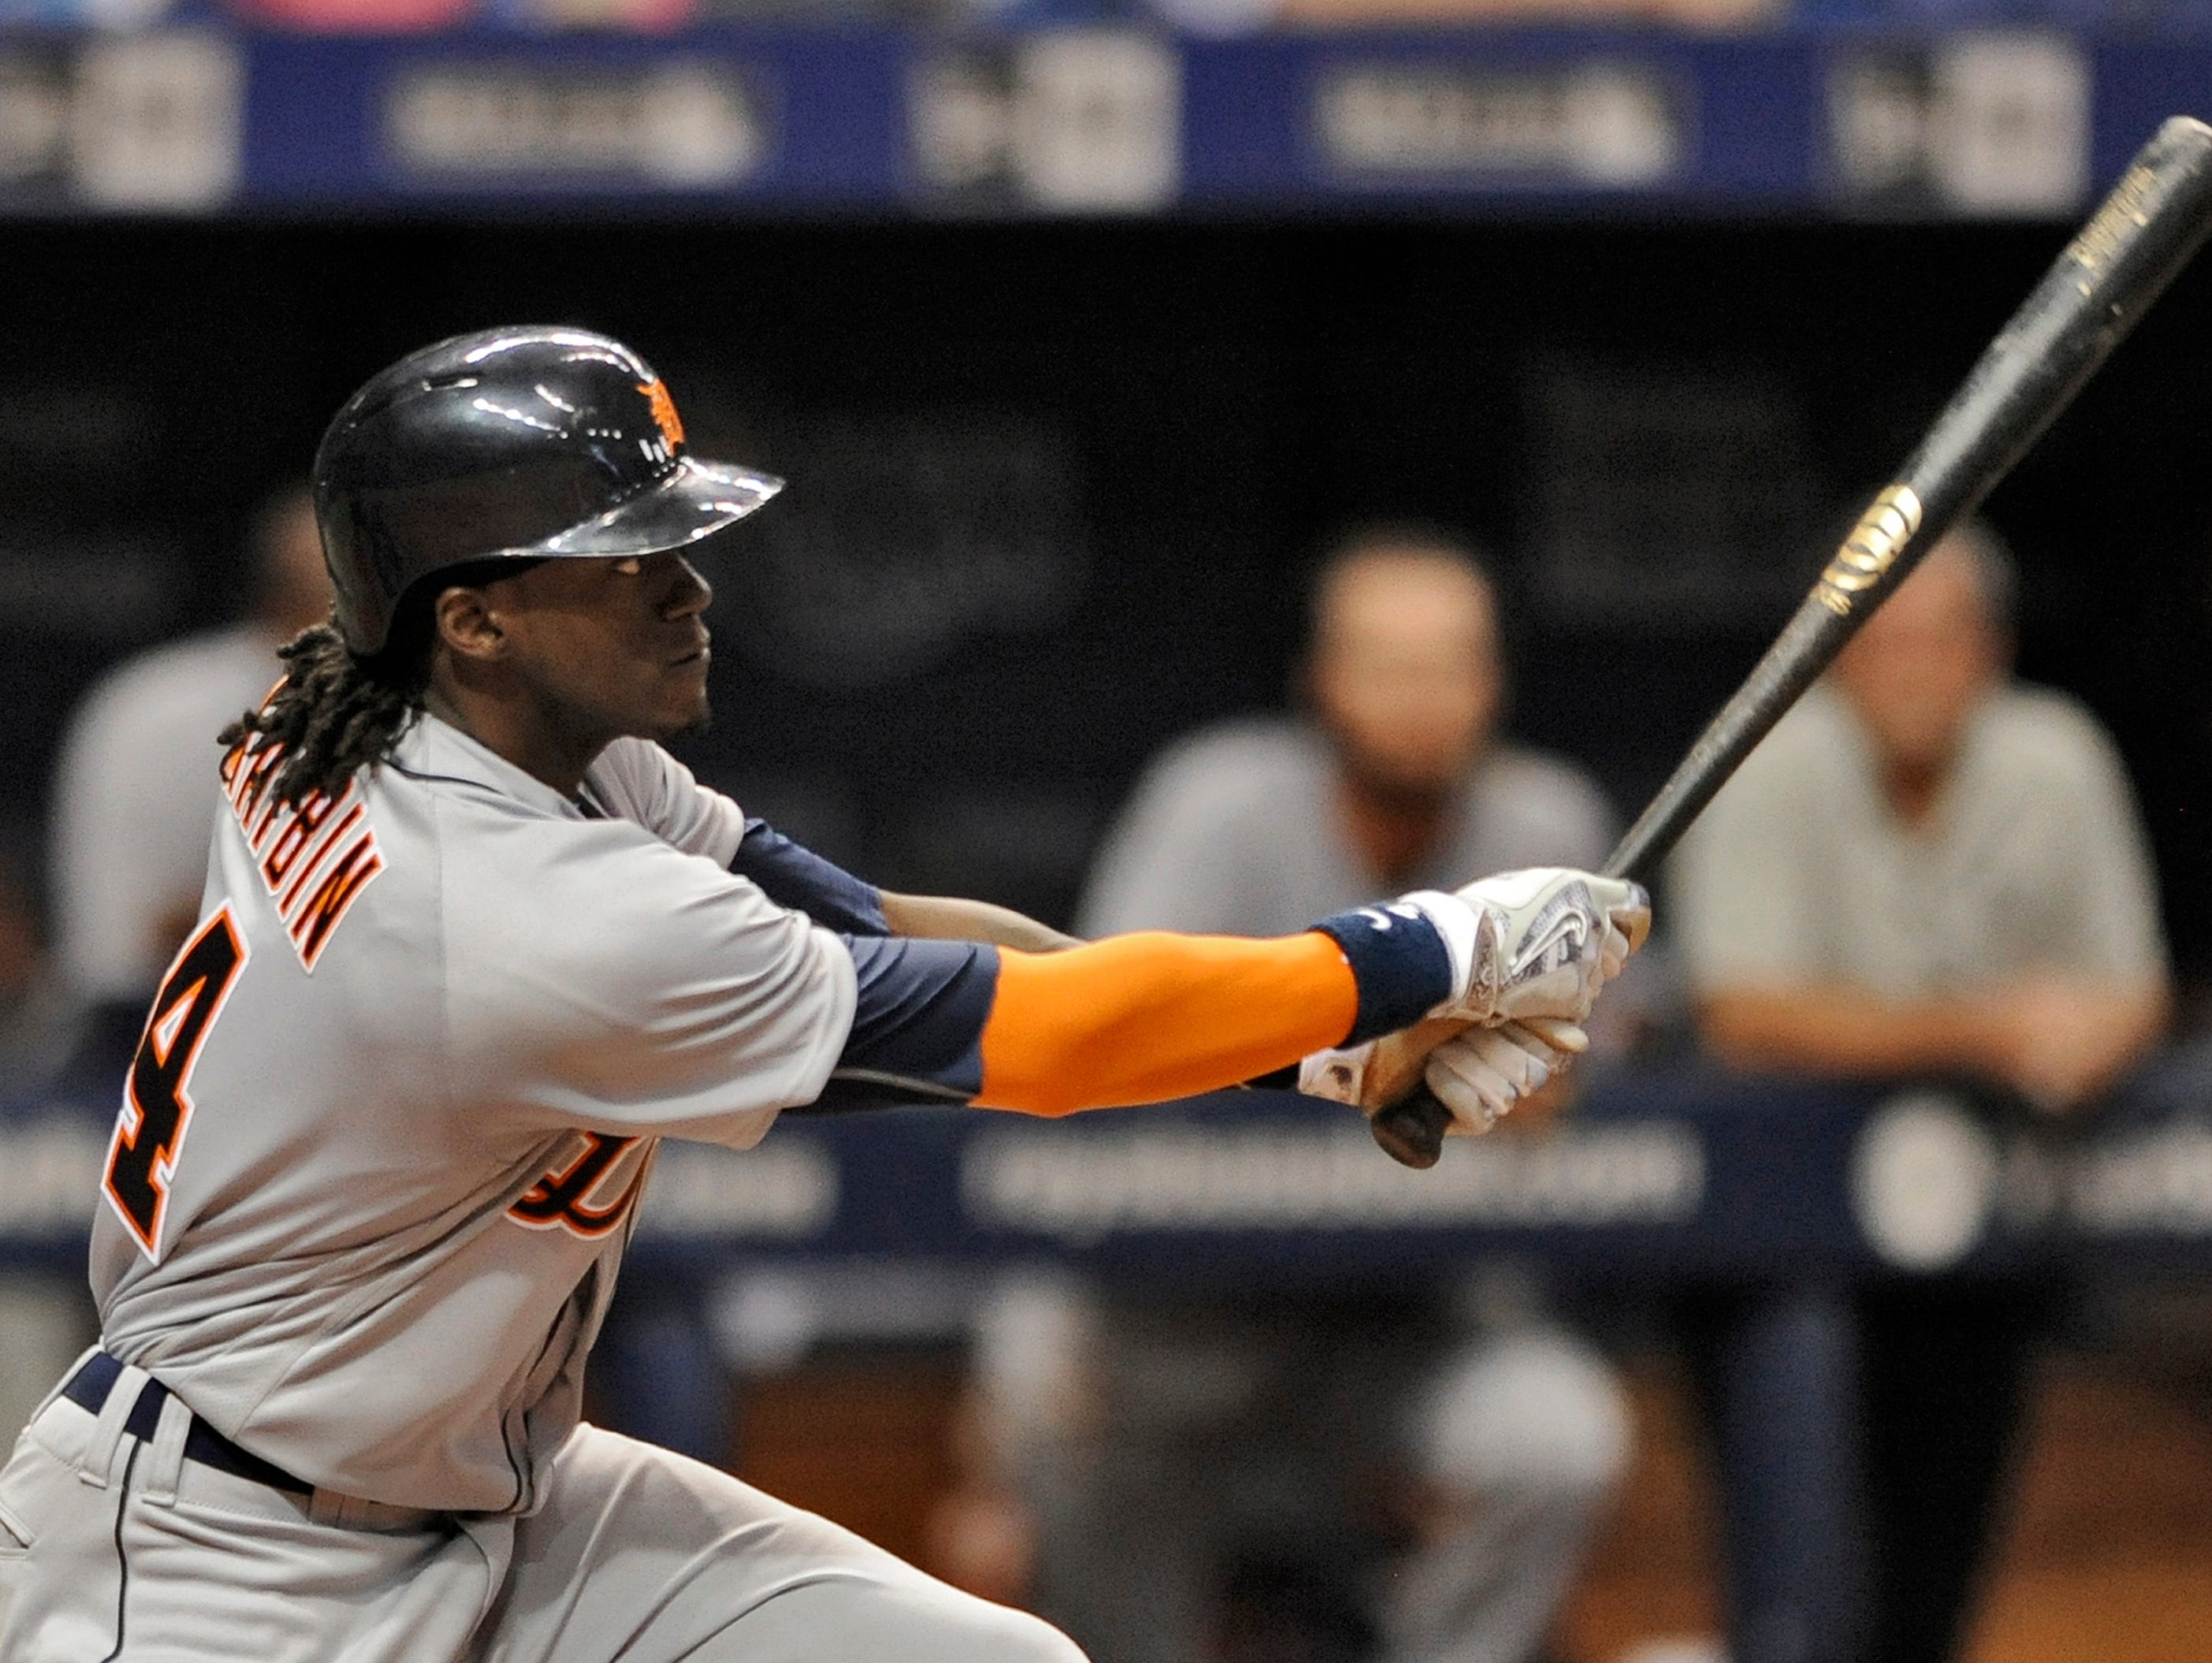 Roberson graduate Cameron Maybin is an outfielder for the Detroit Tigers.